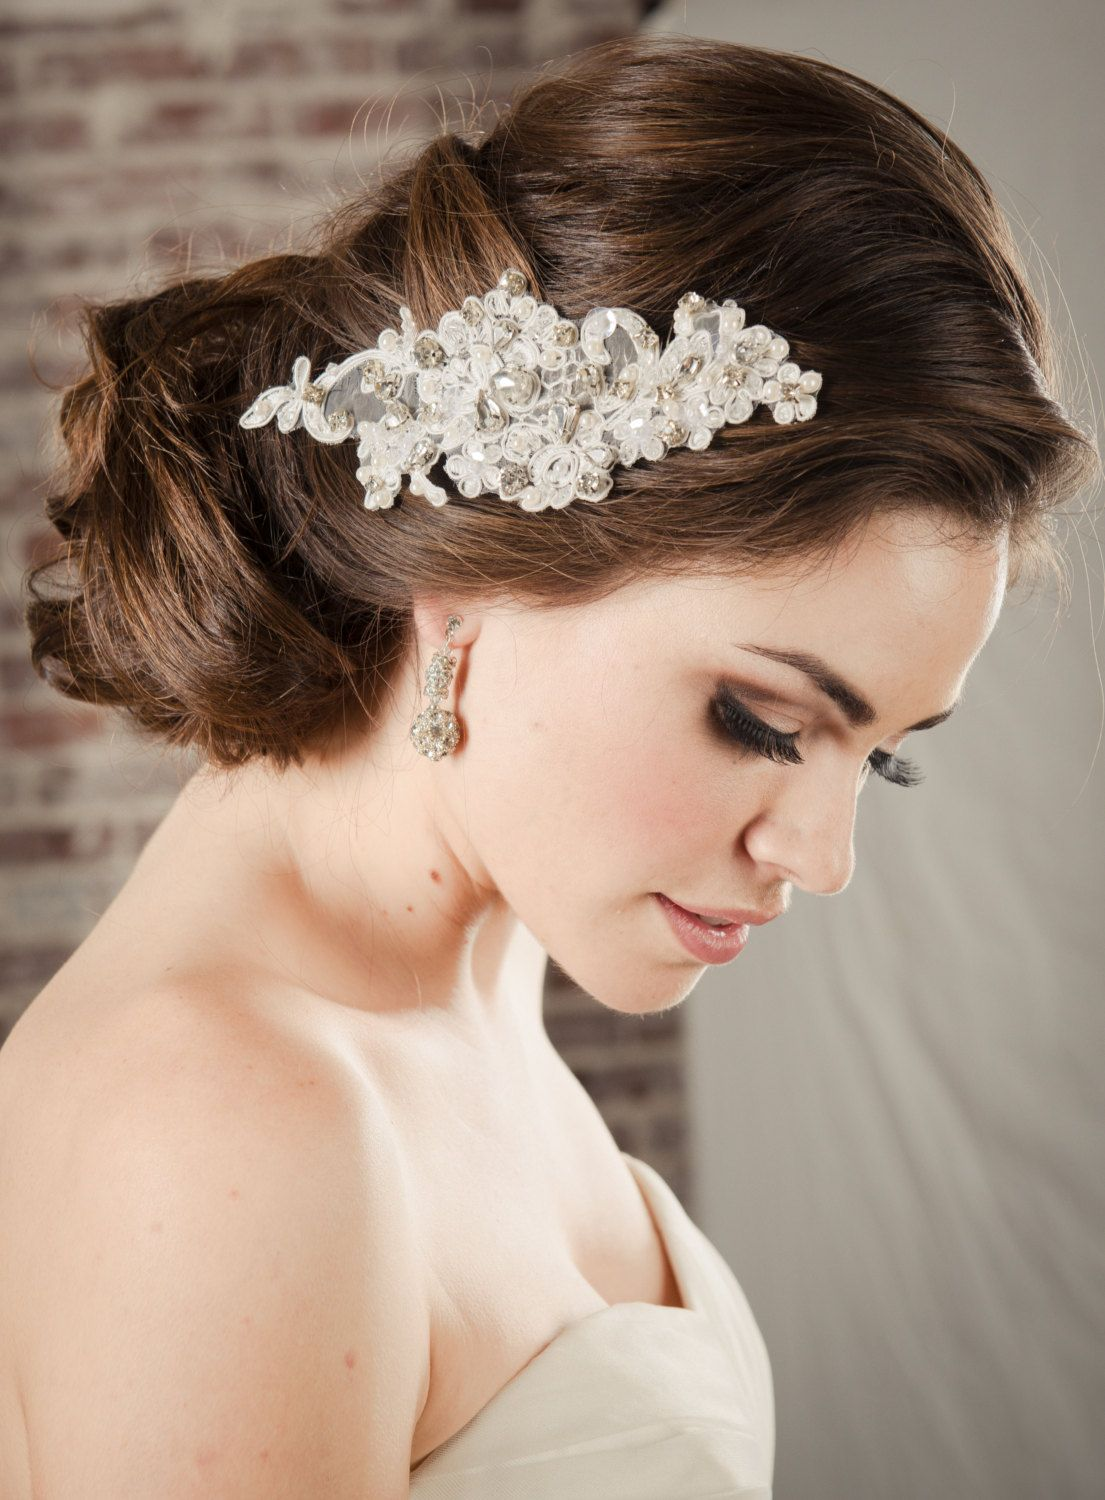 wedding hair accessories for brides